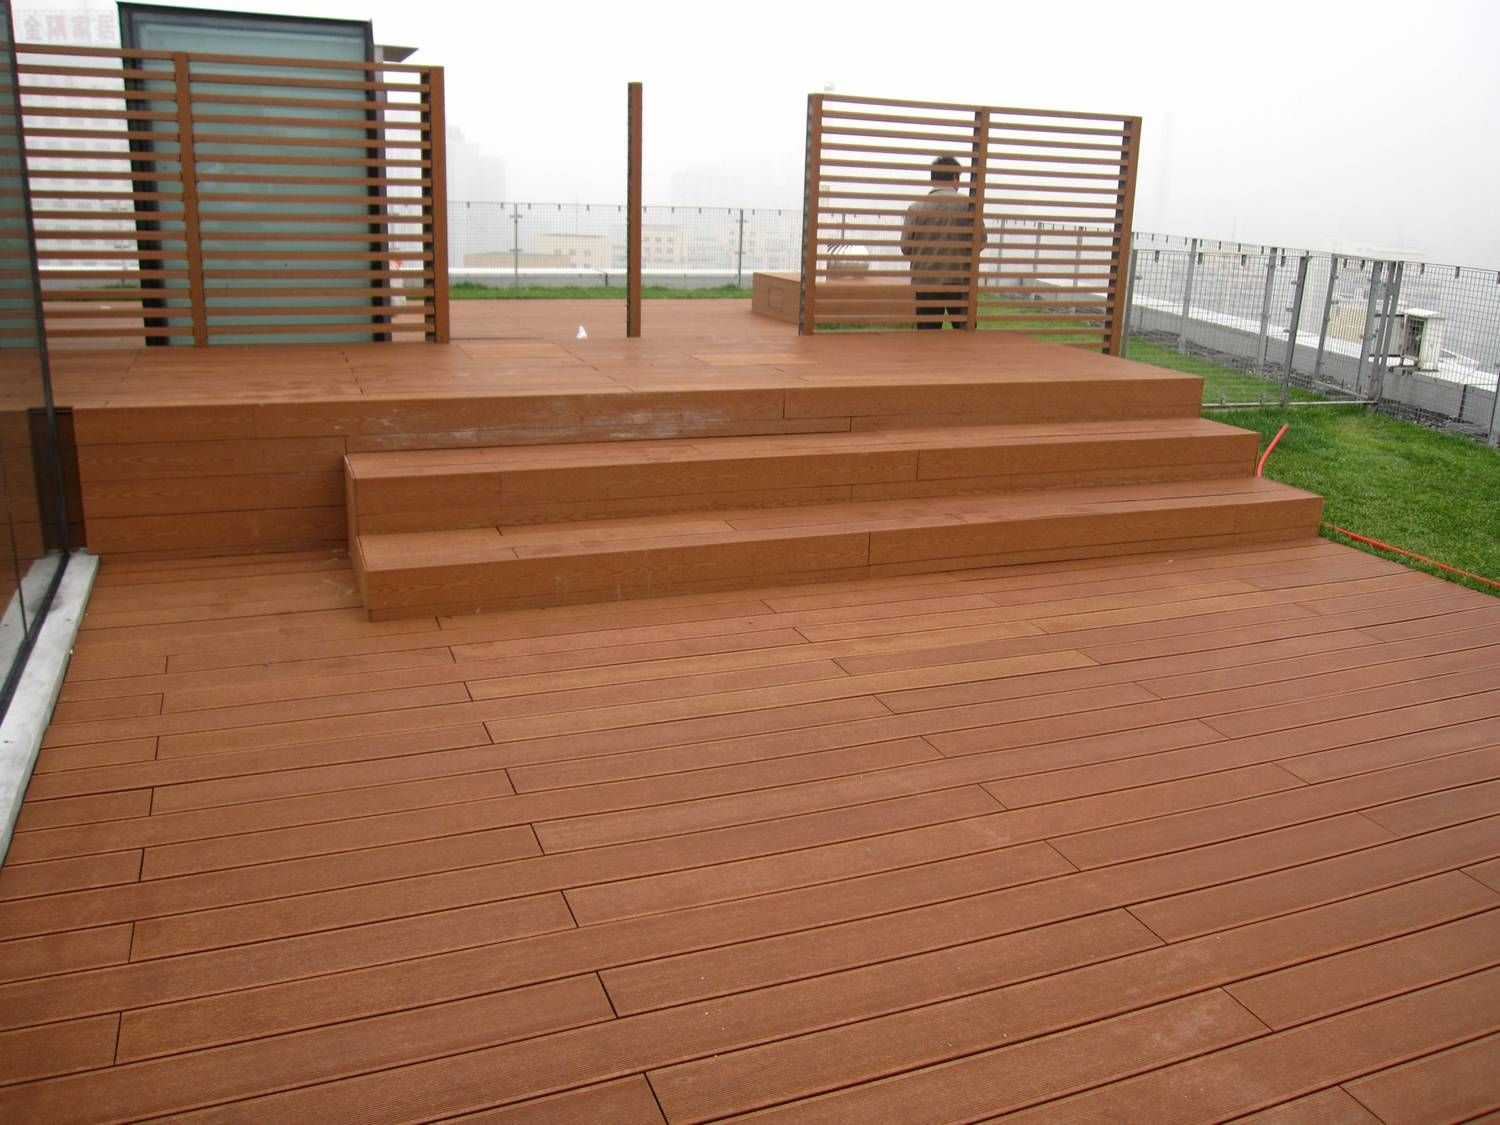 Laminated Flooring External Porch Deck Skirting And Project Mesh Balcony And Deck Board Canada Deck Skirting Deck Decks And Porches